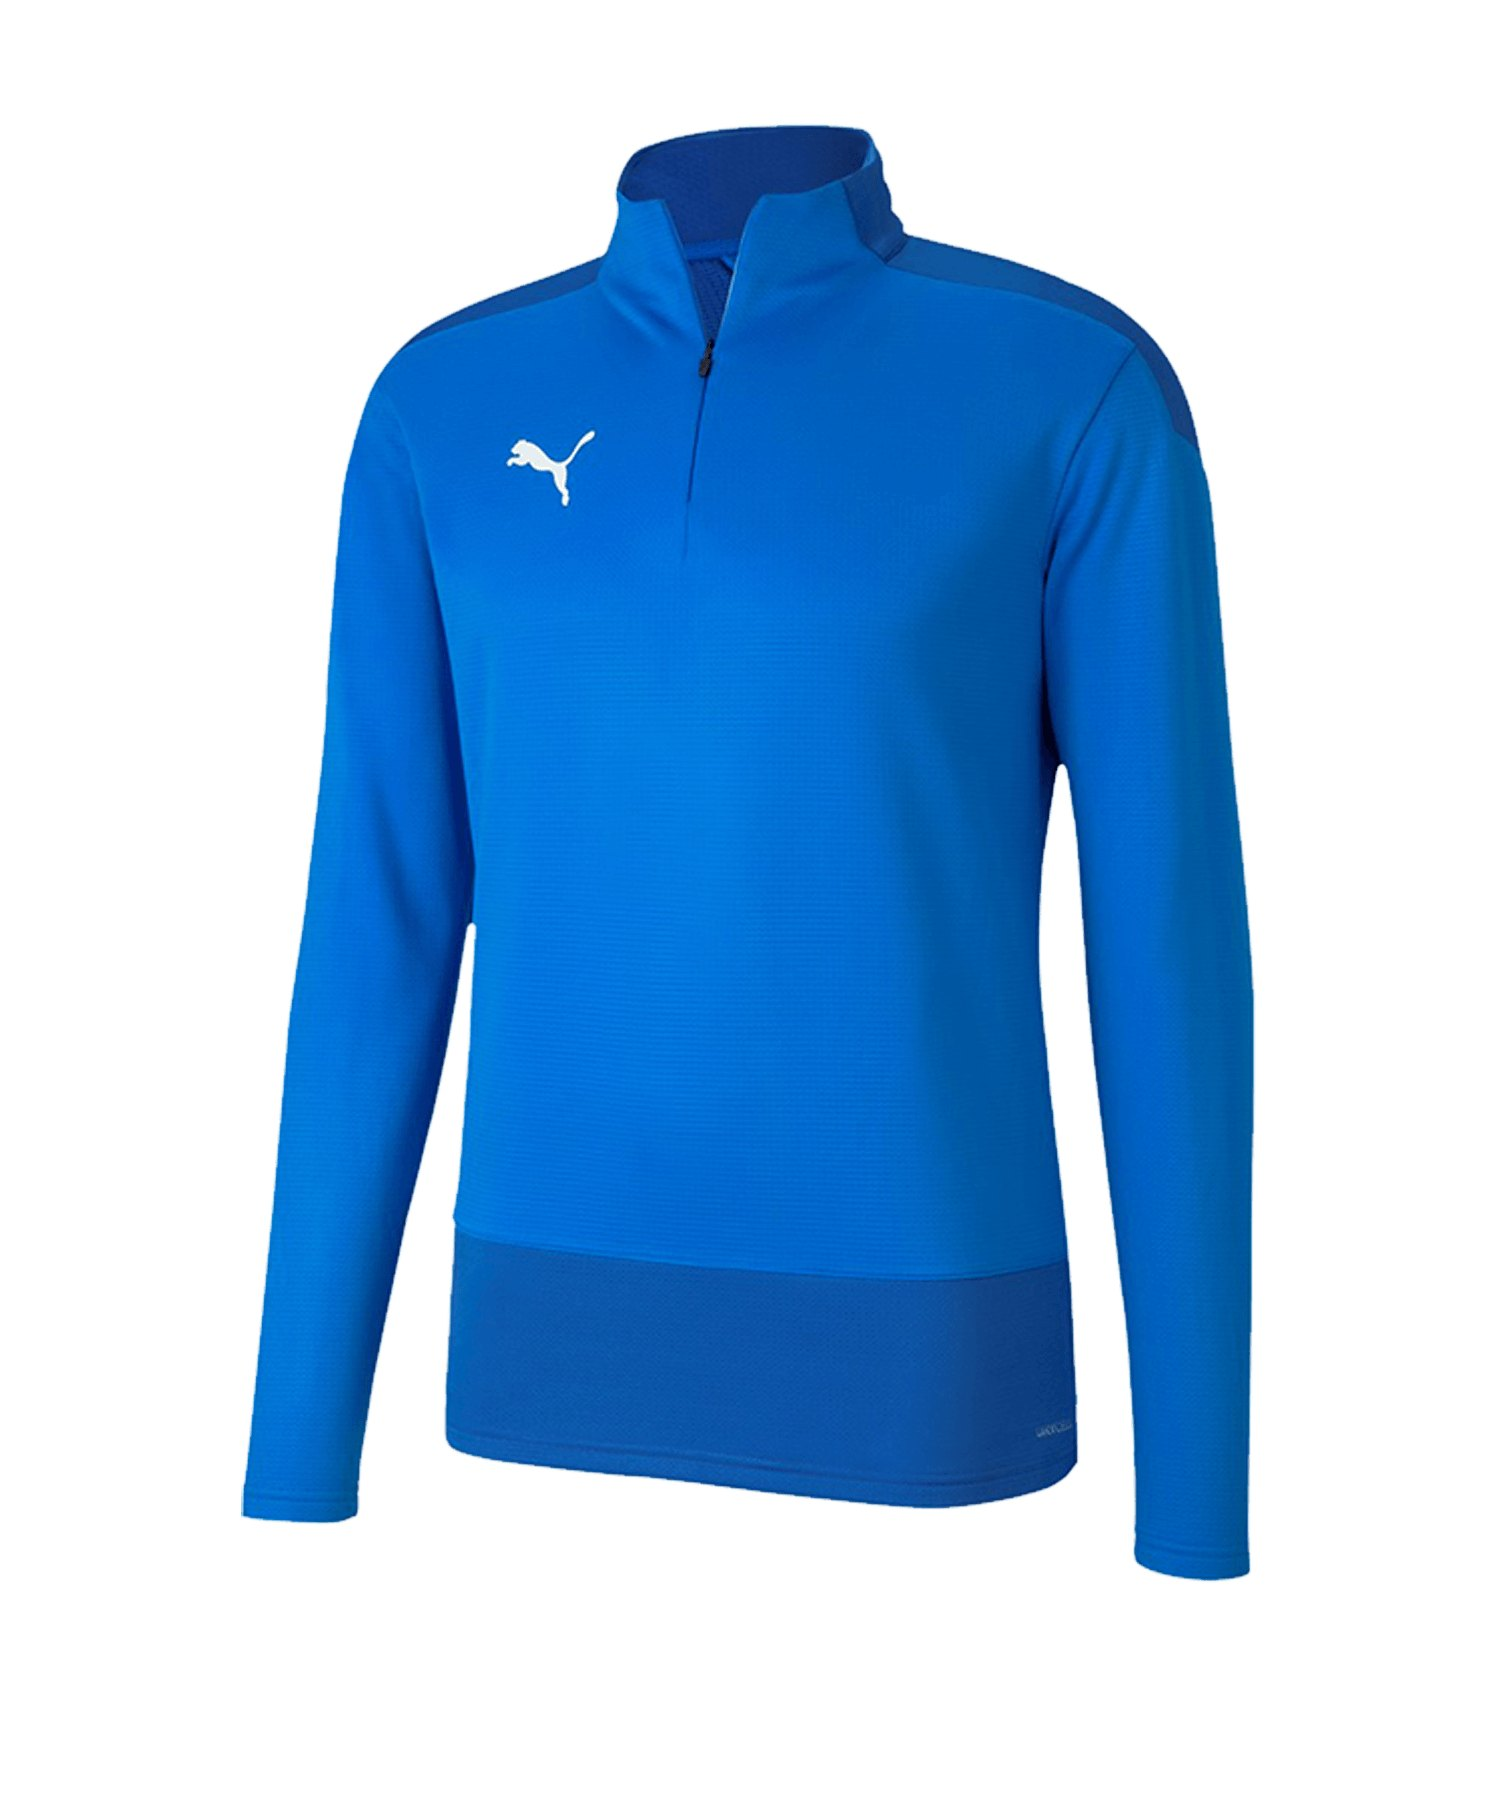 PUMA teamGOAL 23 Training 1/4 Zip Top Kids F02 - blau